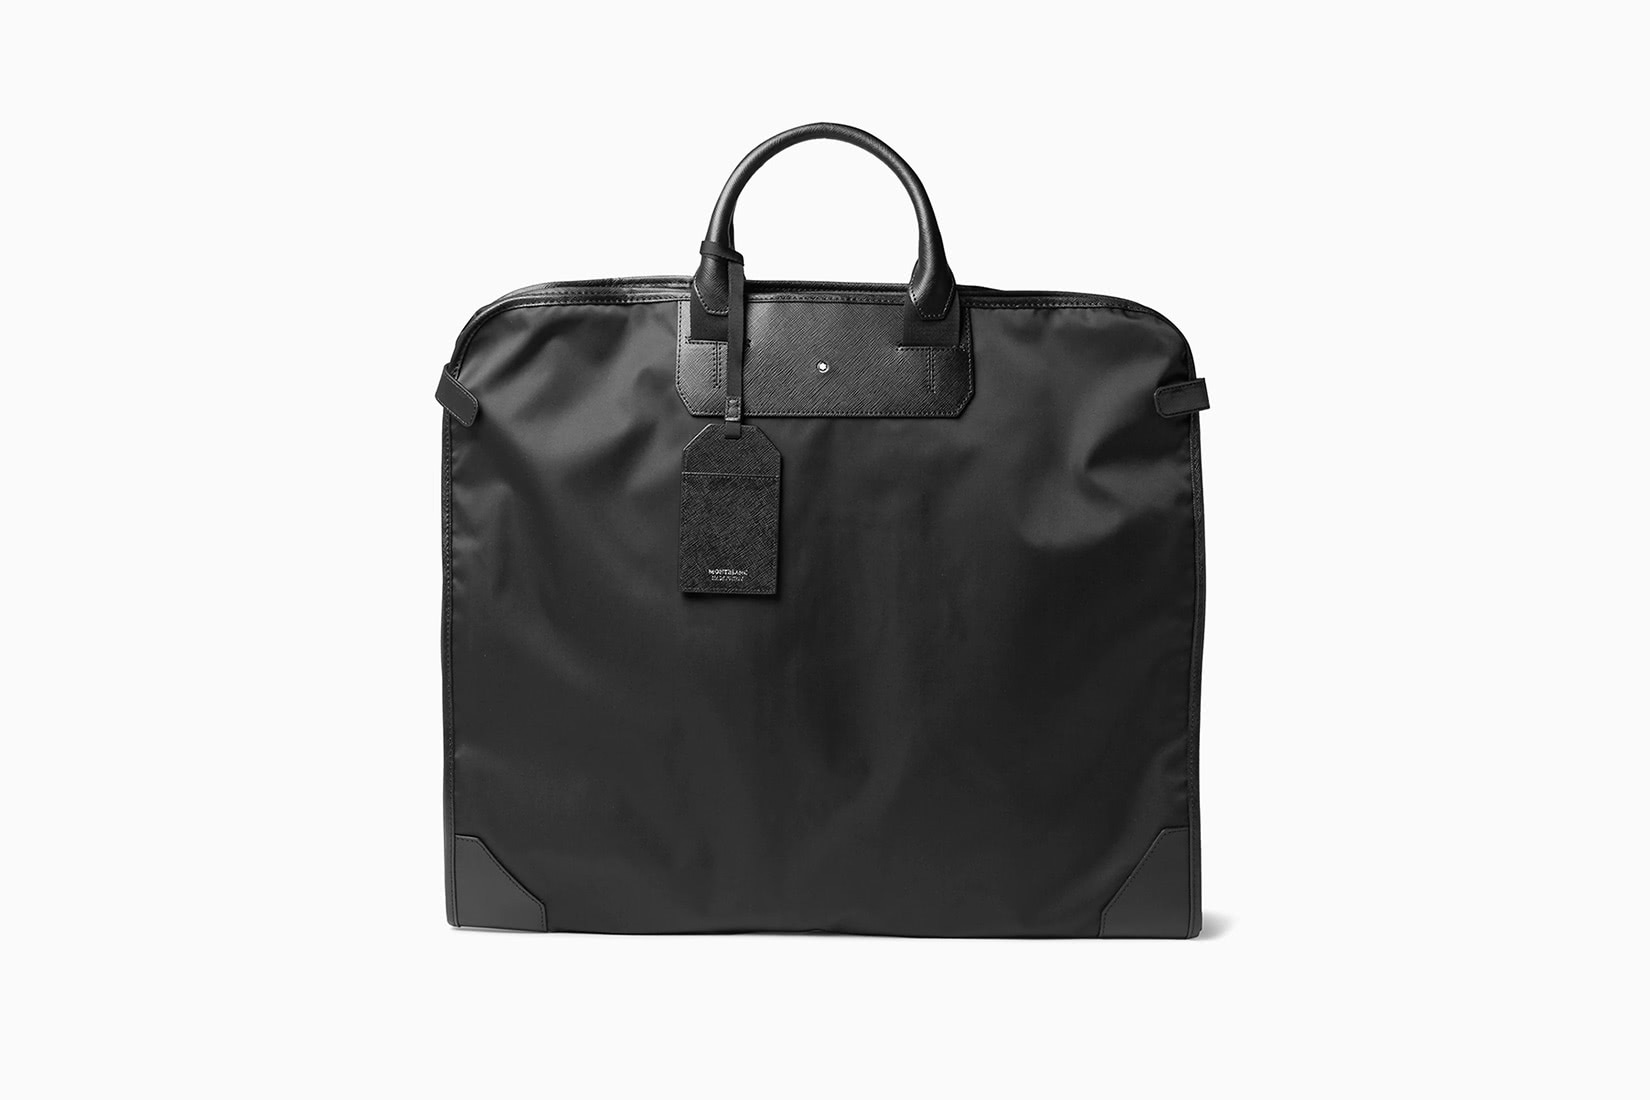 best garment bags high-end montblanc sartorial review - Luxe Digital